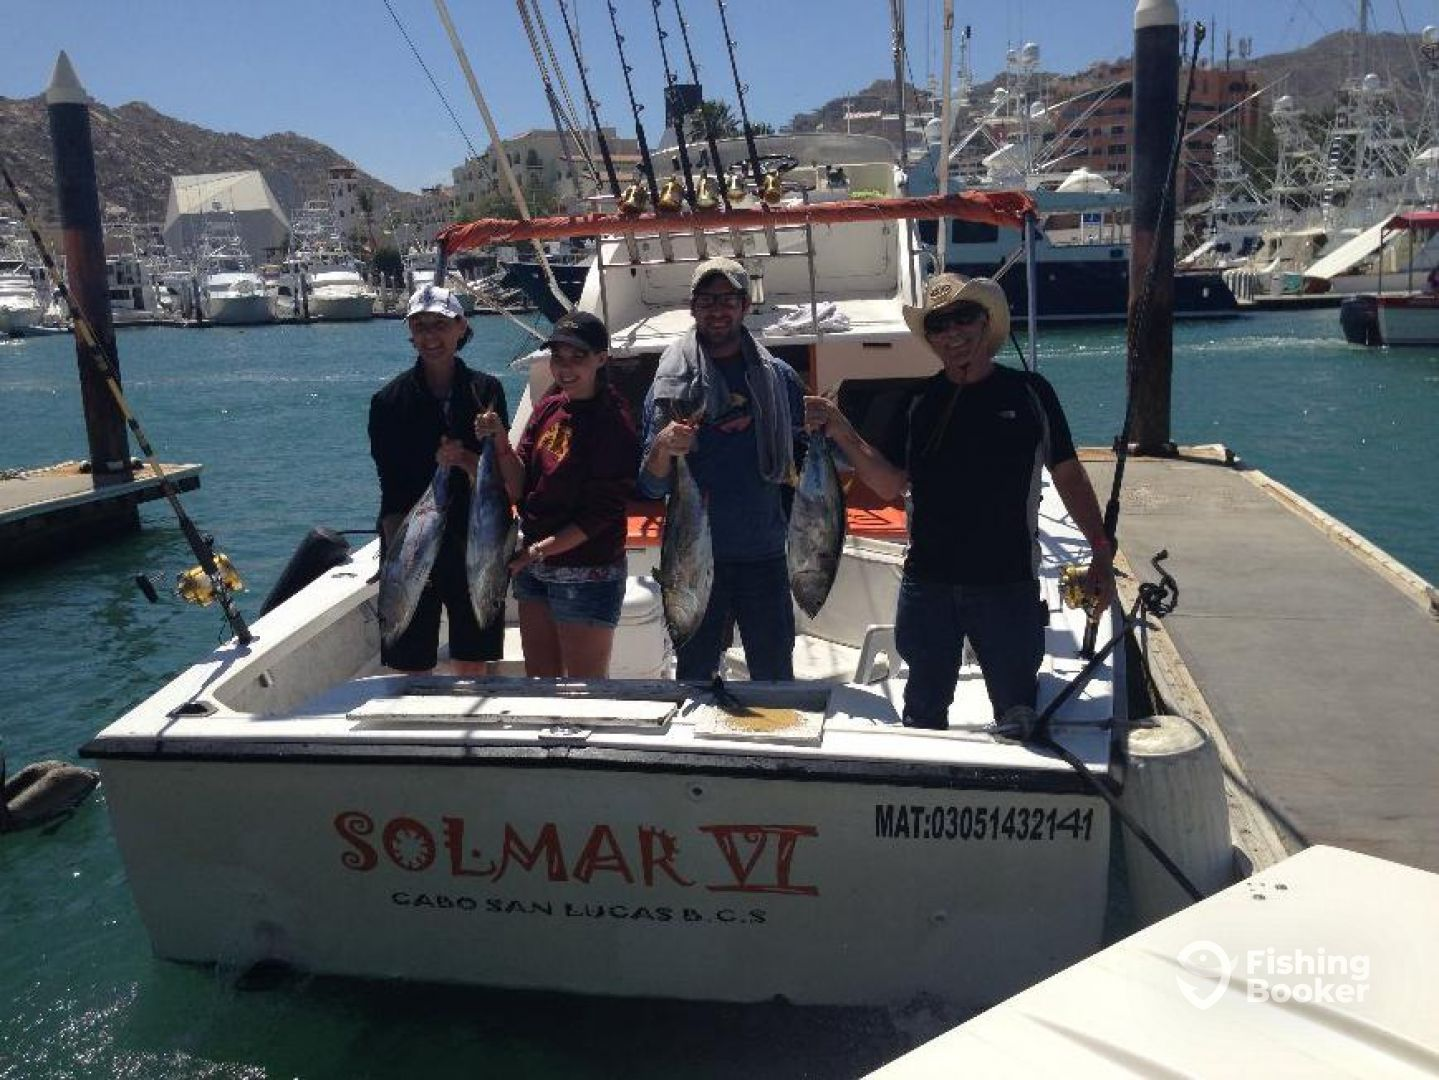 Solmar vi sportfishing 31 ft boat cabo san lucas mexico for Fishing cabo san lucas